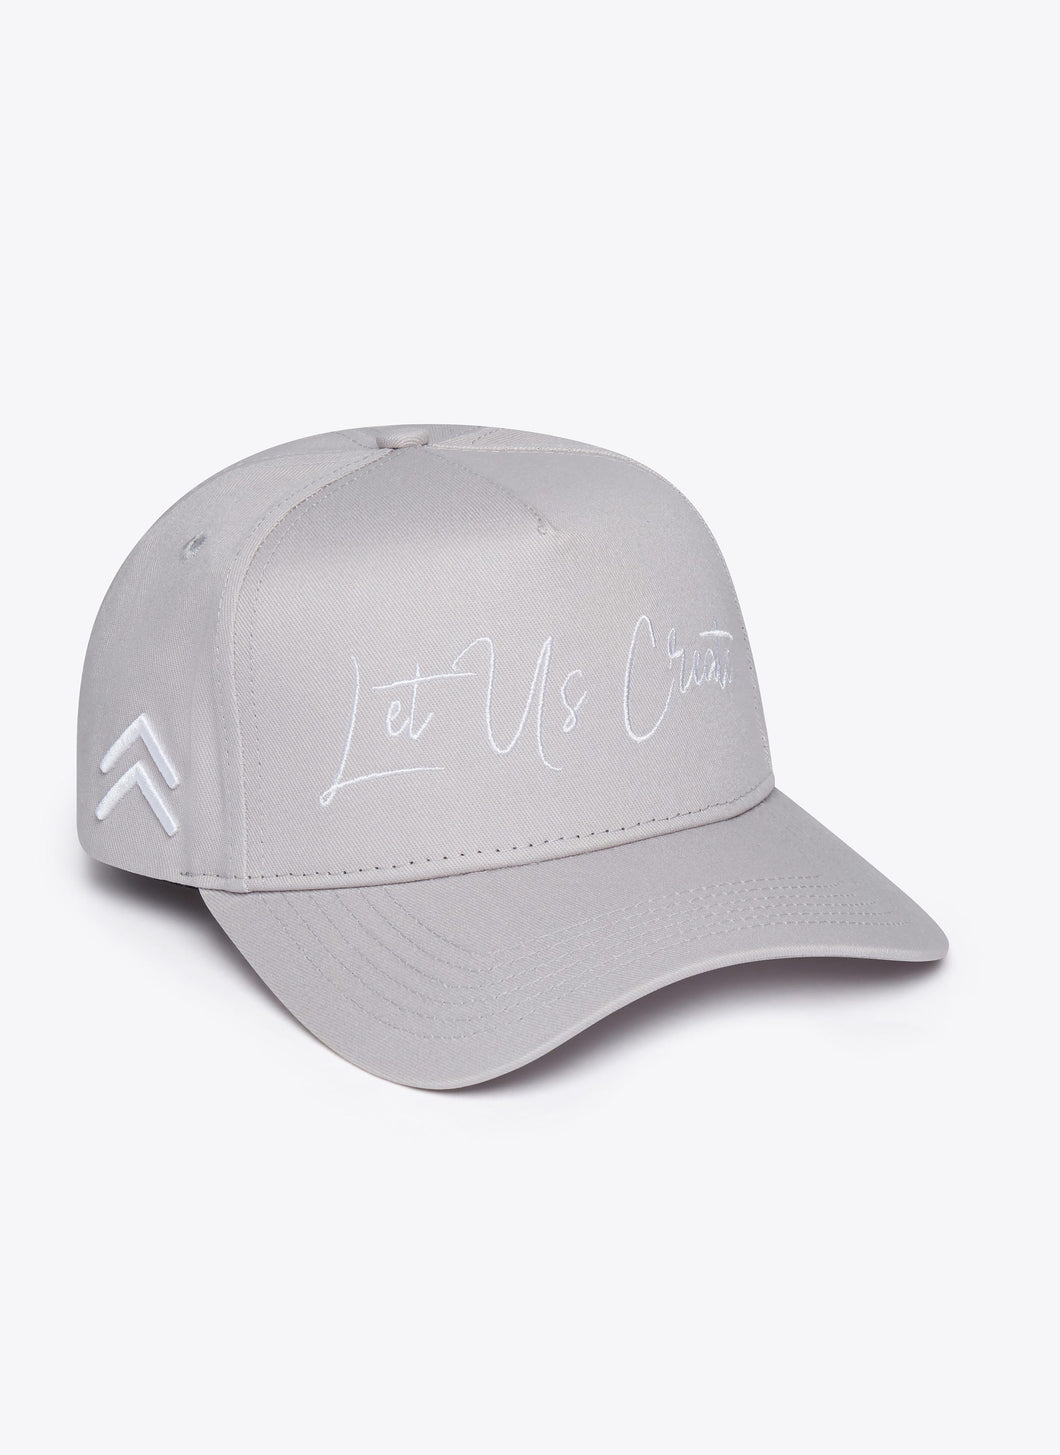 SUMMER LUC GREY CAP